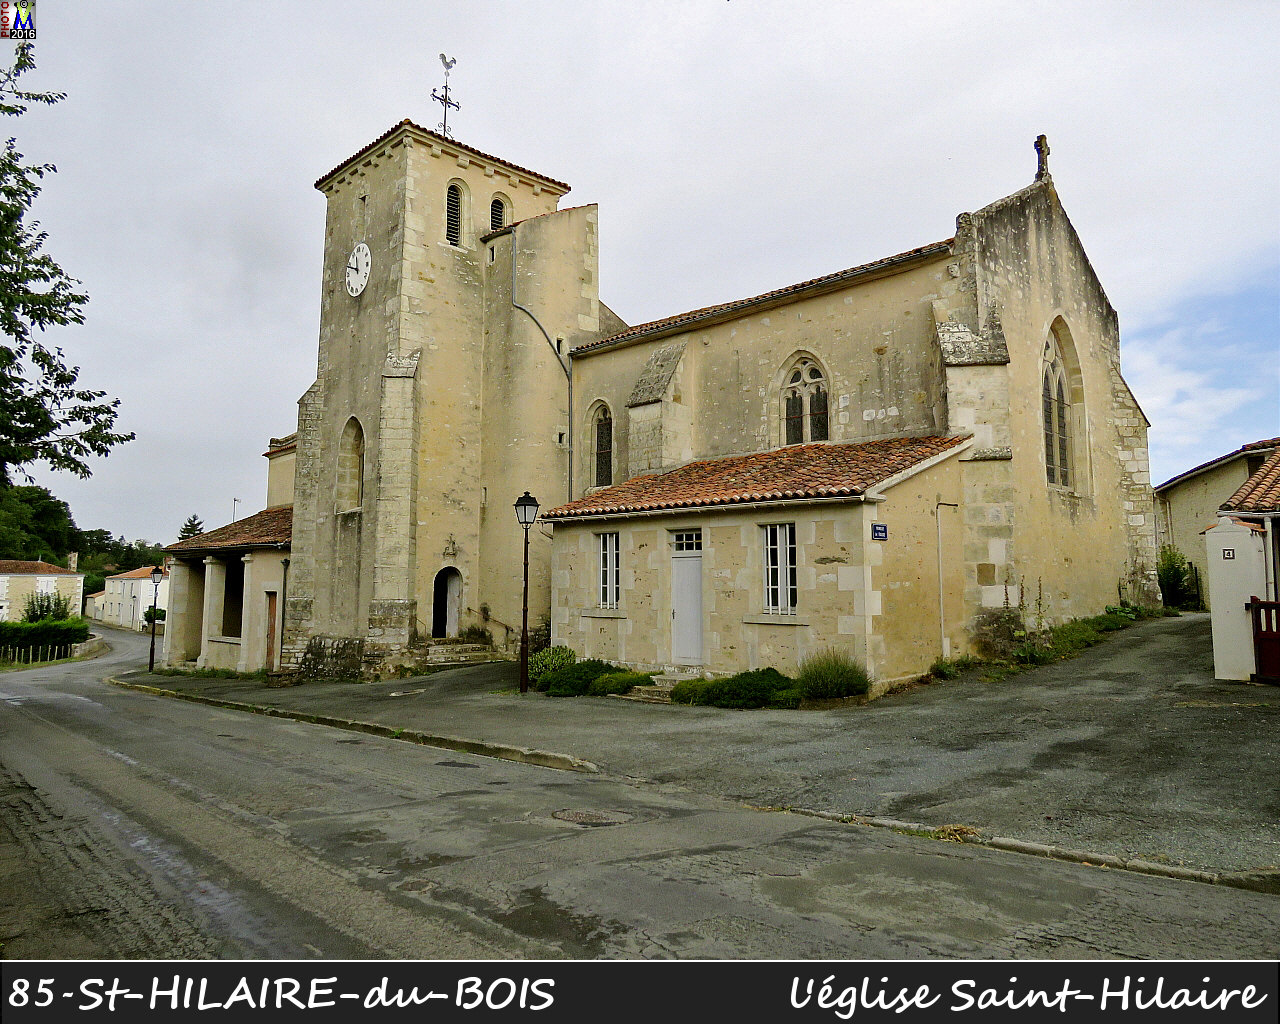 85CAILLERE-StHILAIRE-HILAIRE_eglise_1002.jpg